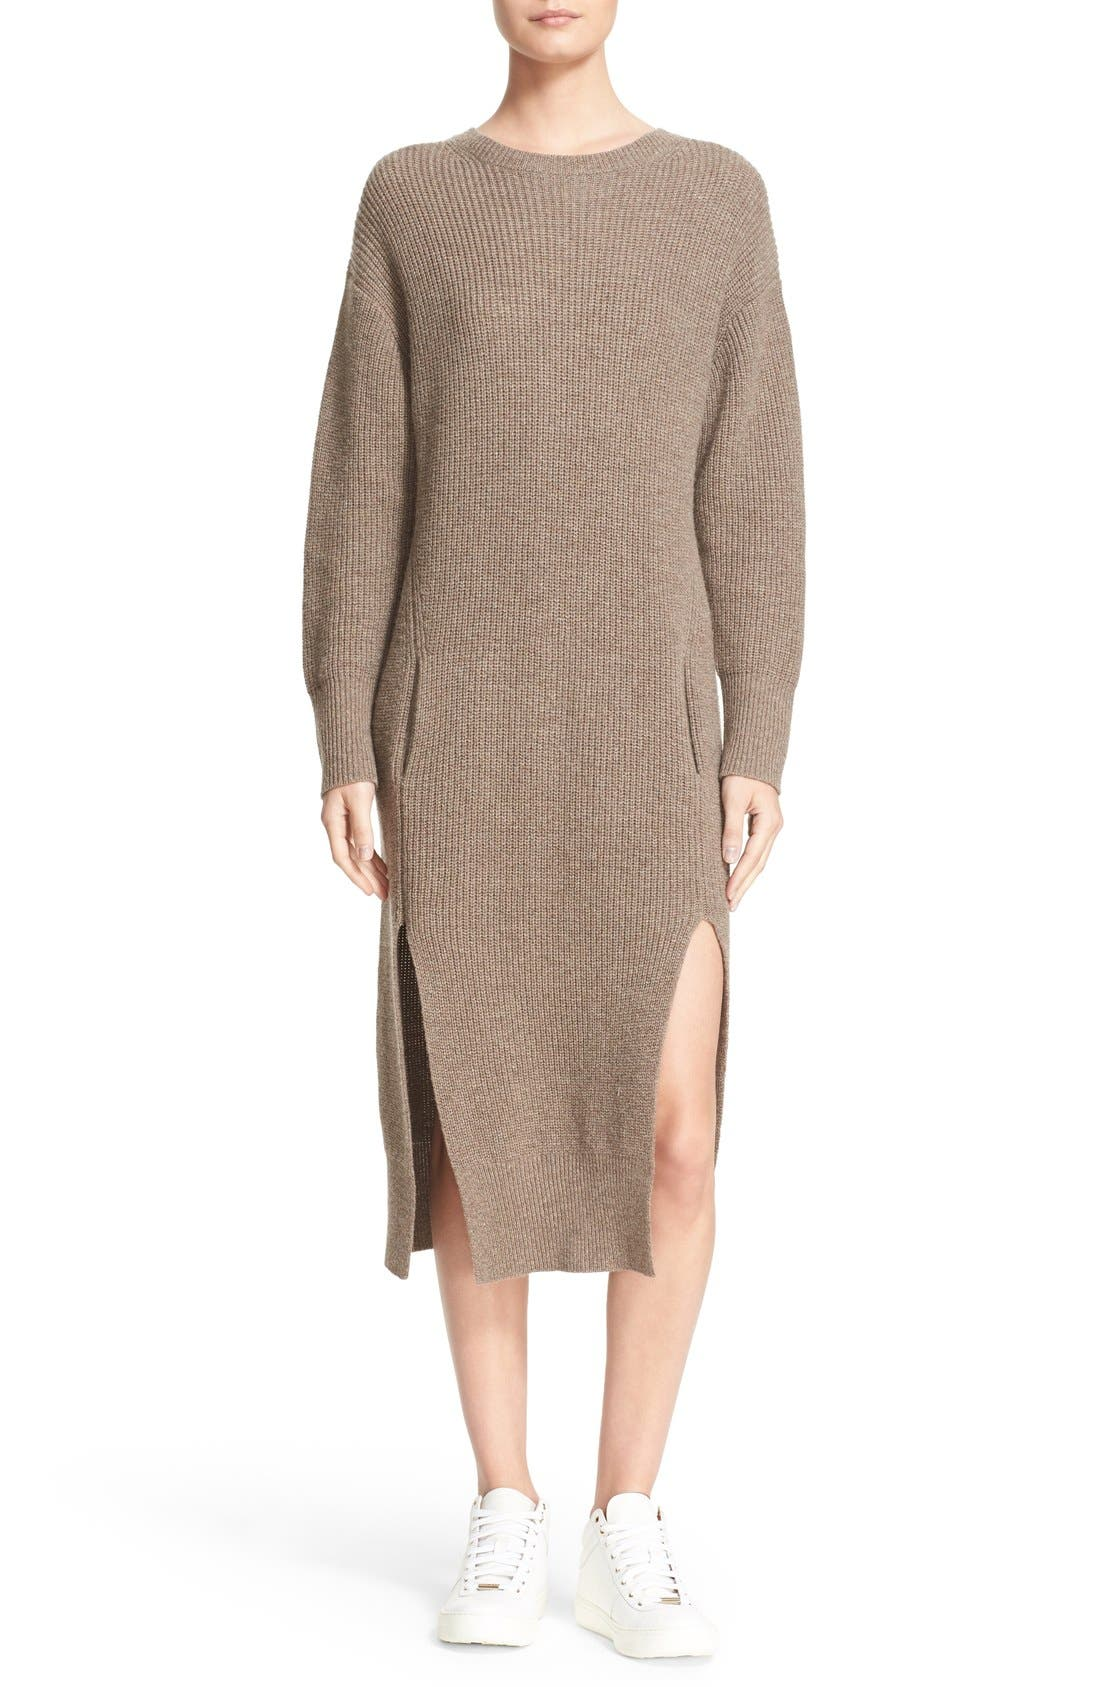 Alternate Image 1 Selected - Sea Wool & Cashmere Midi Sweater Dress